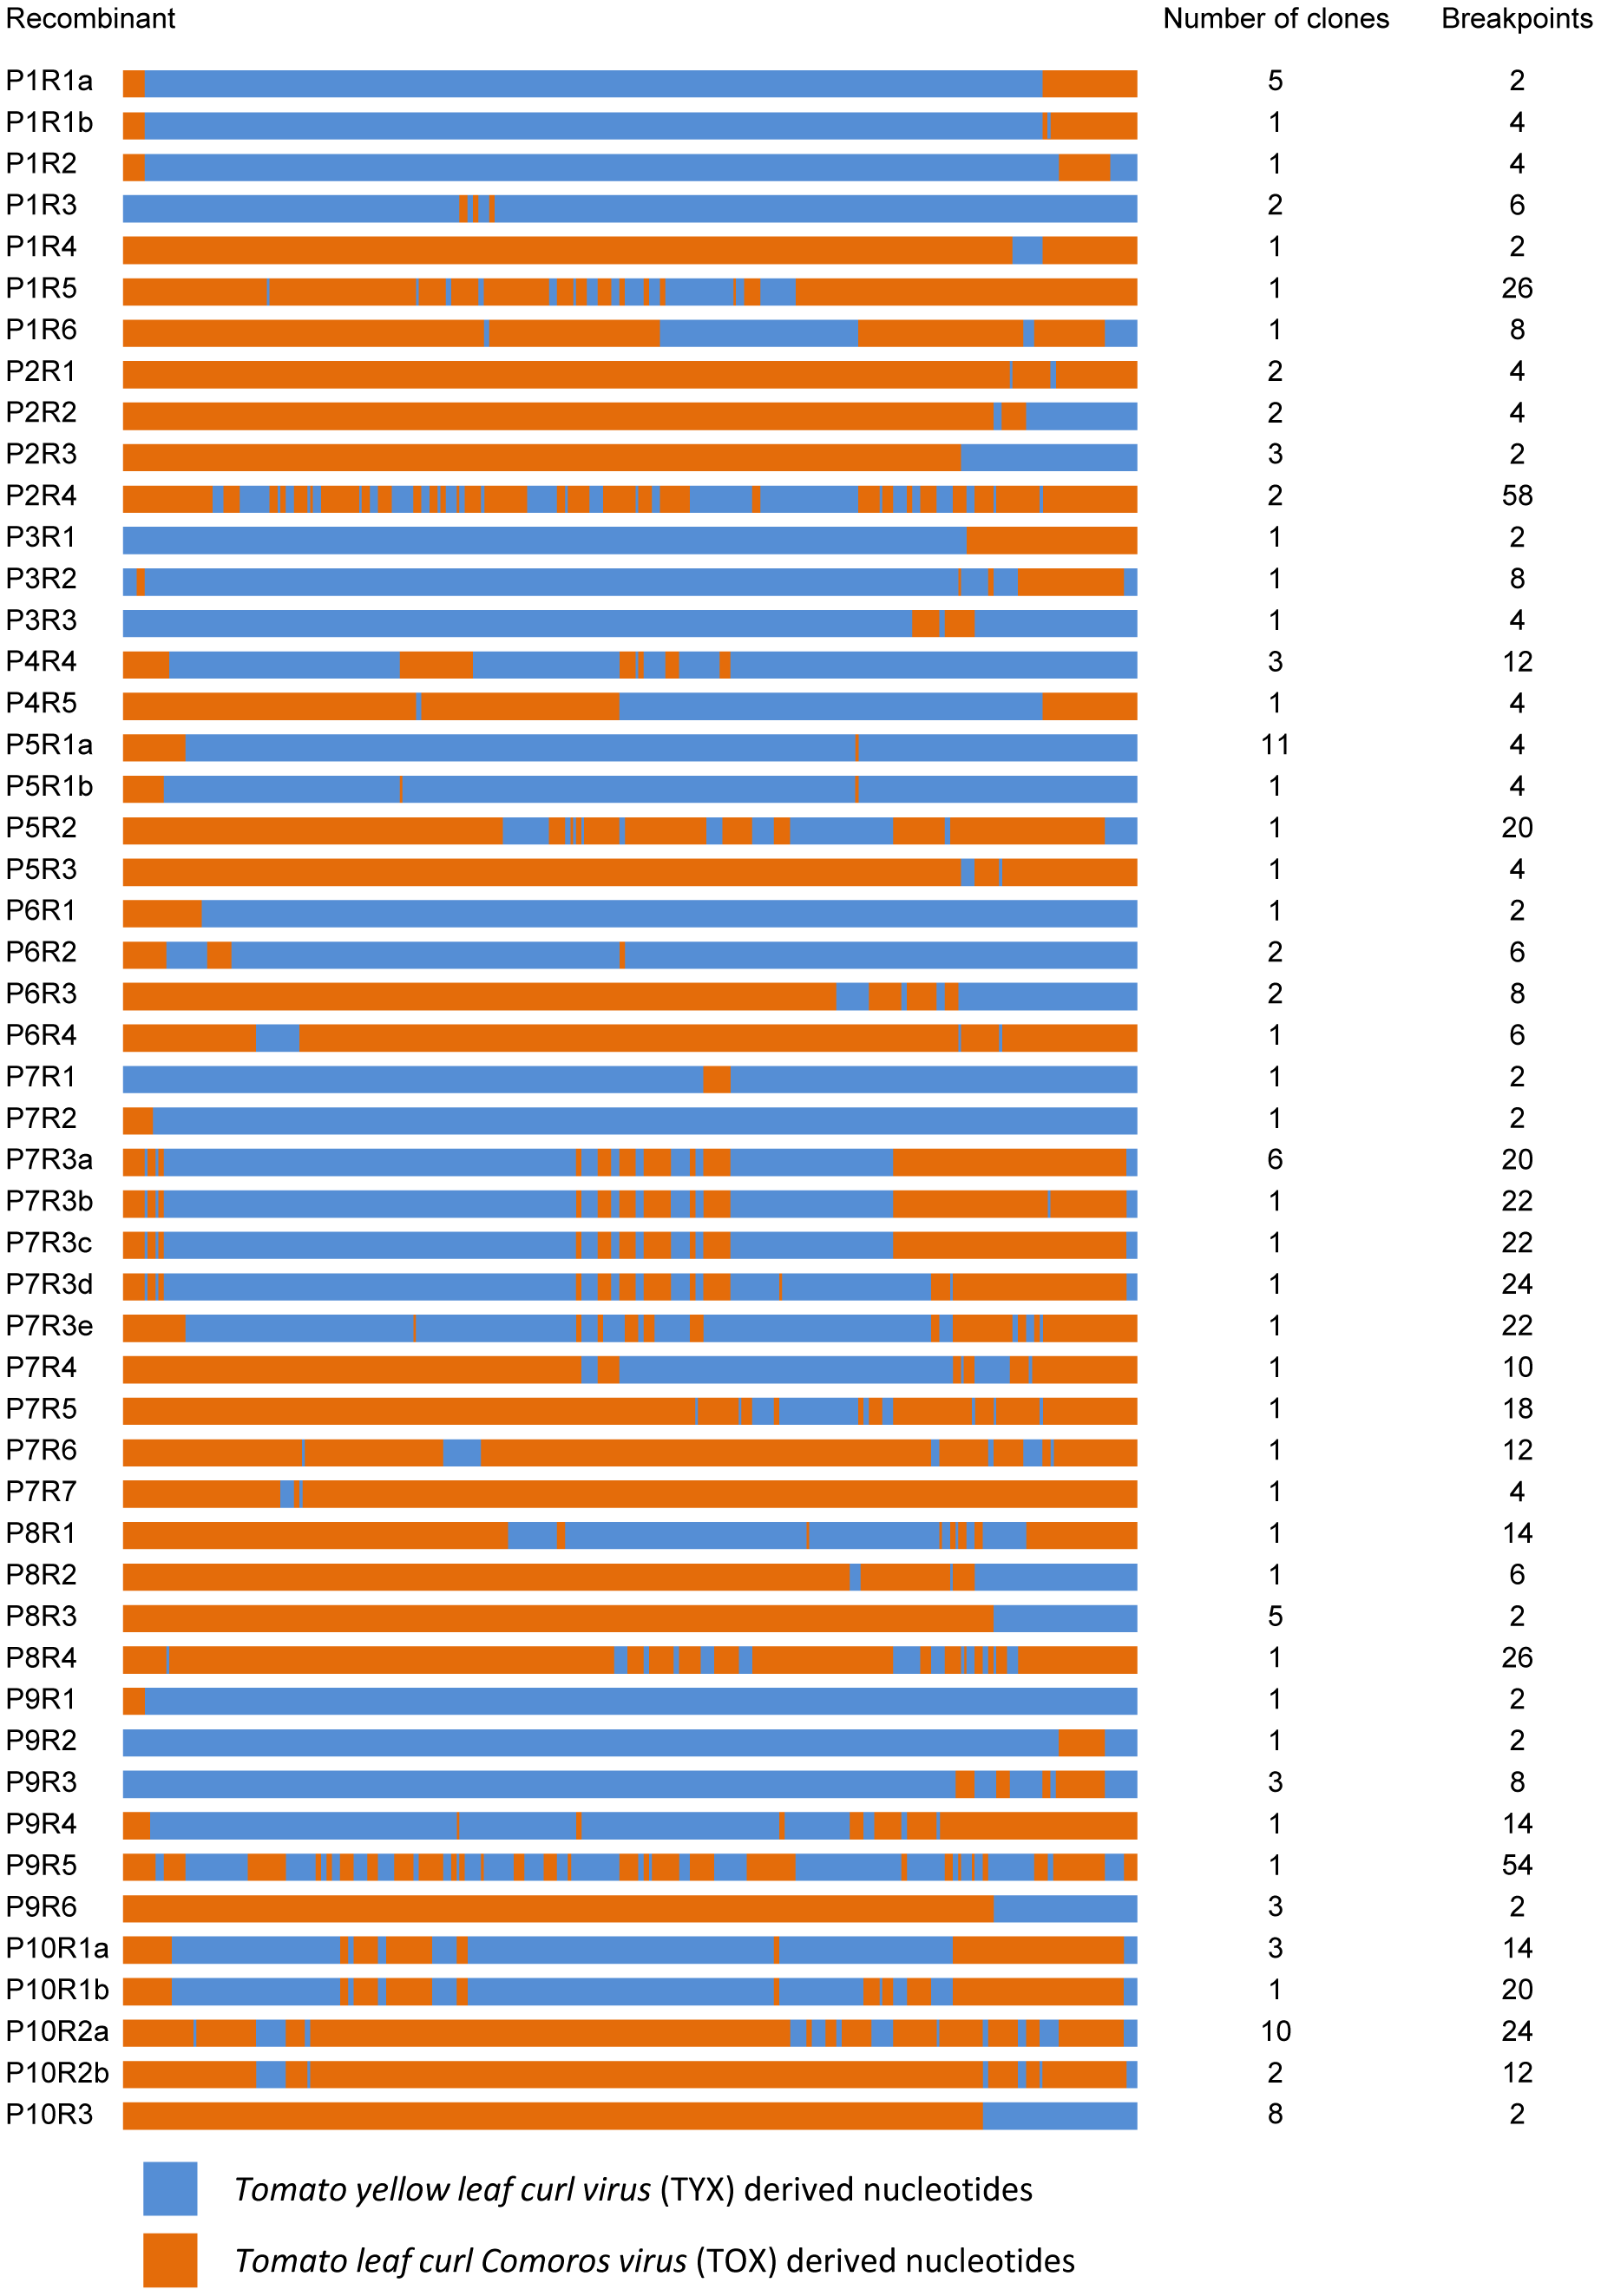 Unique recombinant genome mosaics arising during mixed <i>Tomato yellow leaf curl virus</i> (TYX) and <i>Tomato leaf curl Comoros virus</i> (TOX) infections.